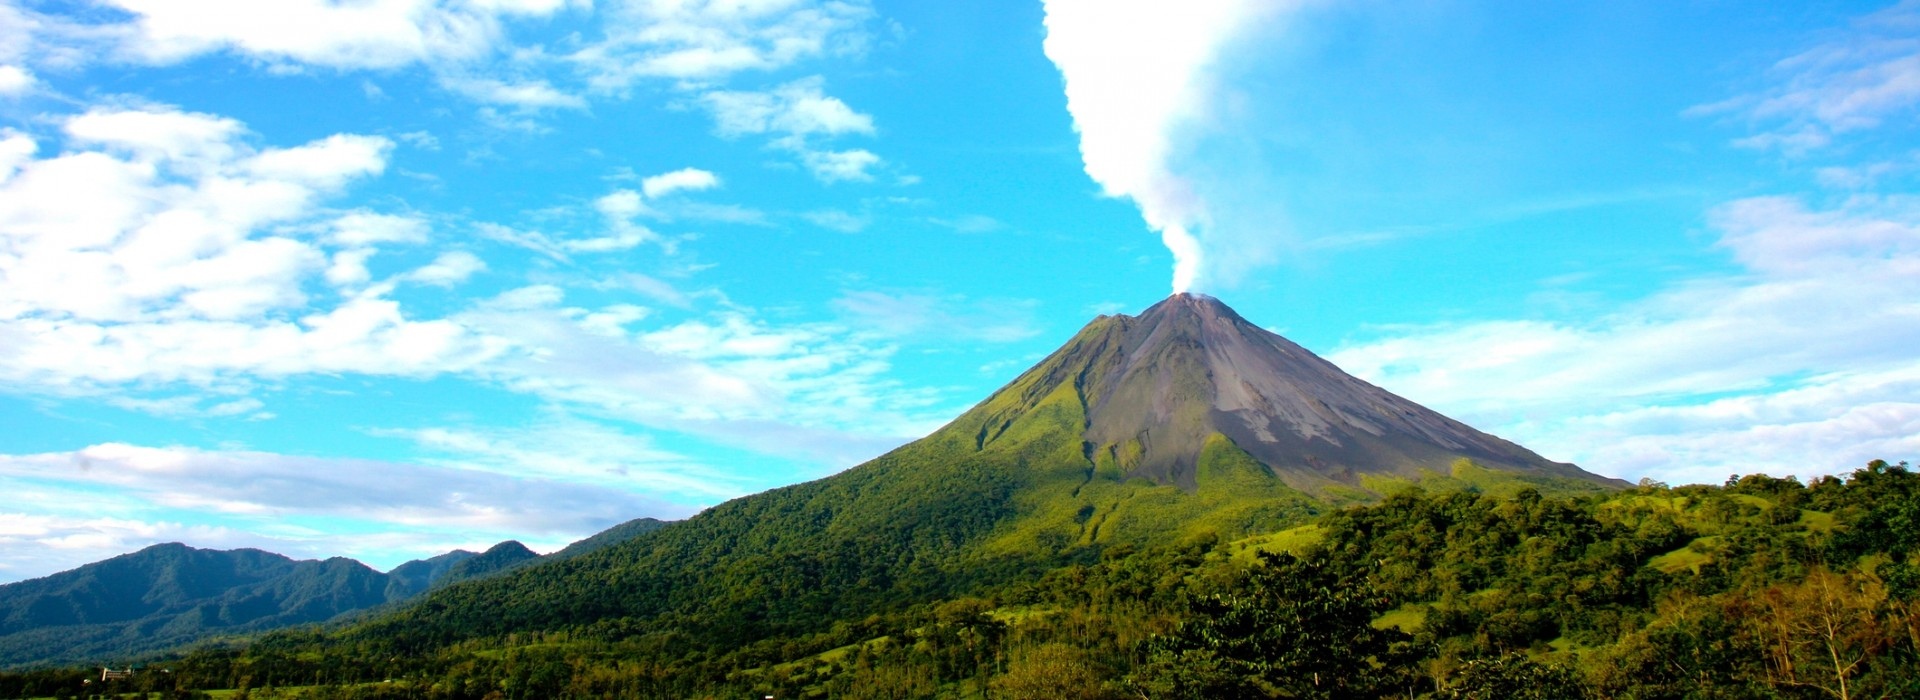 Traveling Costa Rica - Tours and Holiday Packages in Costa Rica